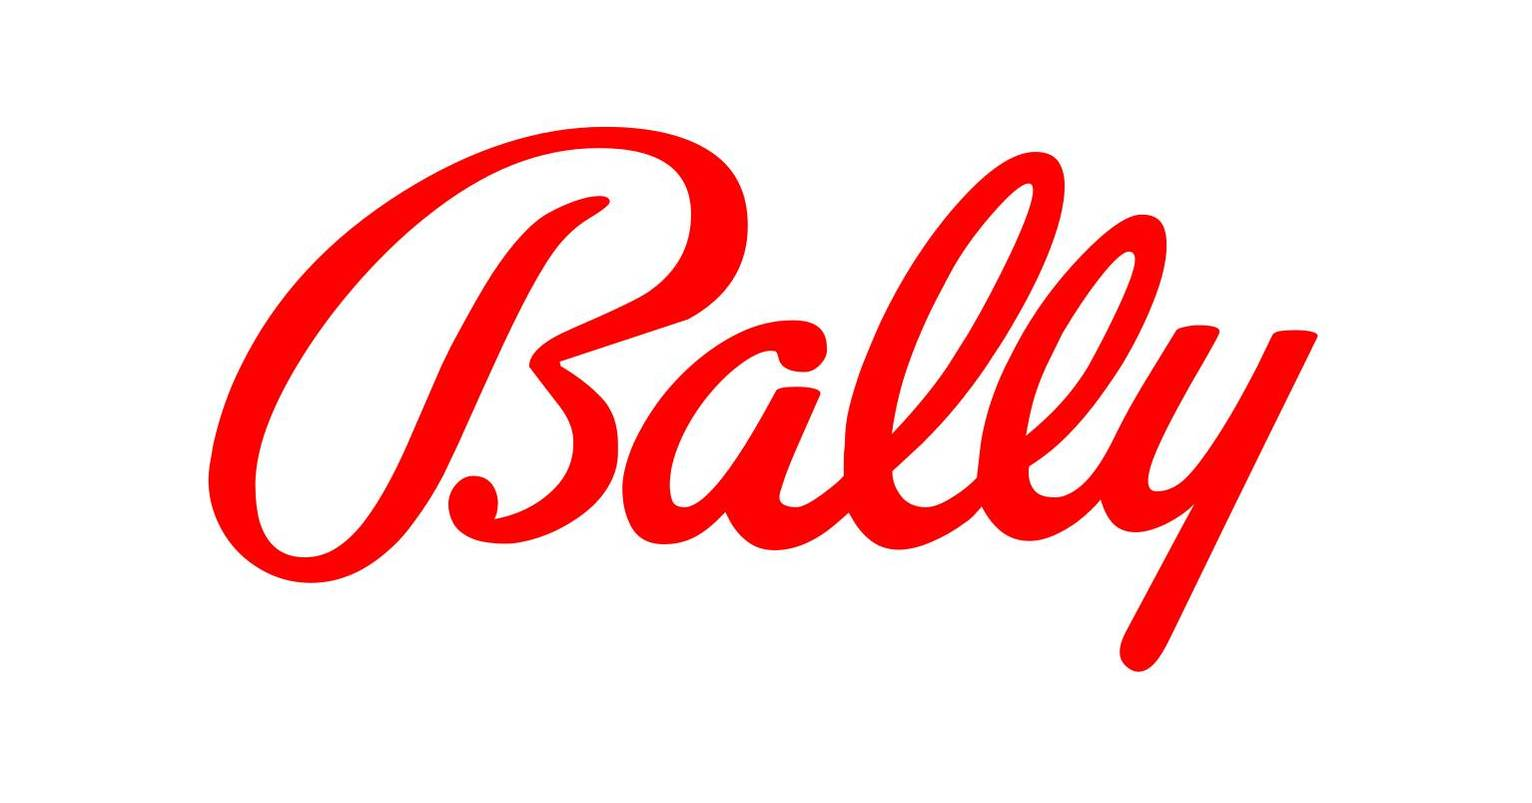 Sinclair Enters Arrangement With Bally's For 21 Fox Rebrand